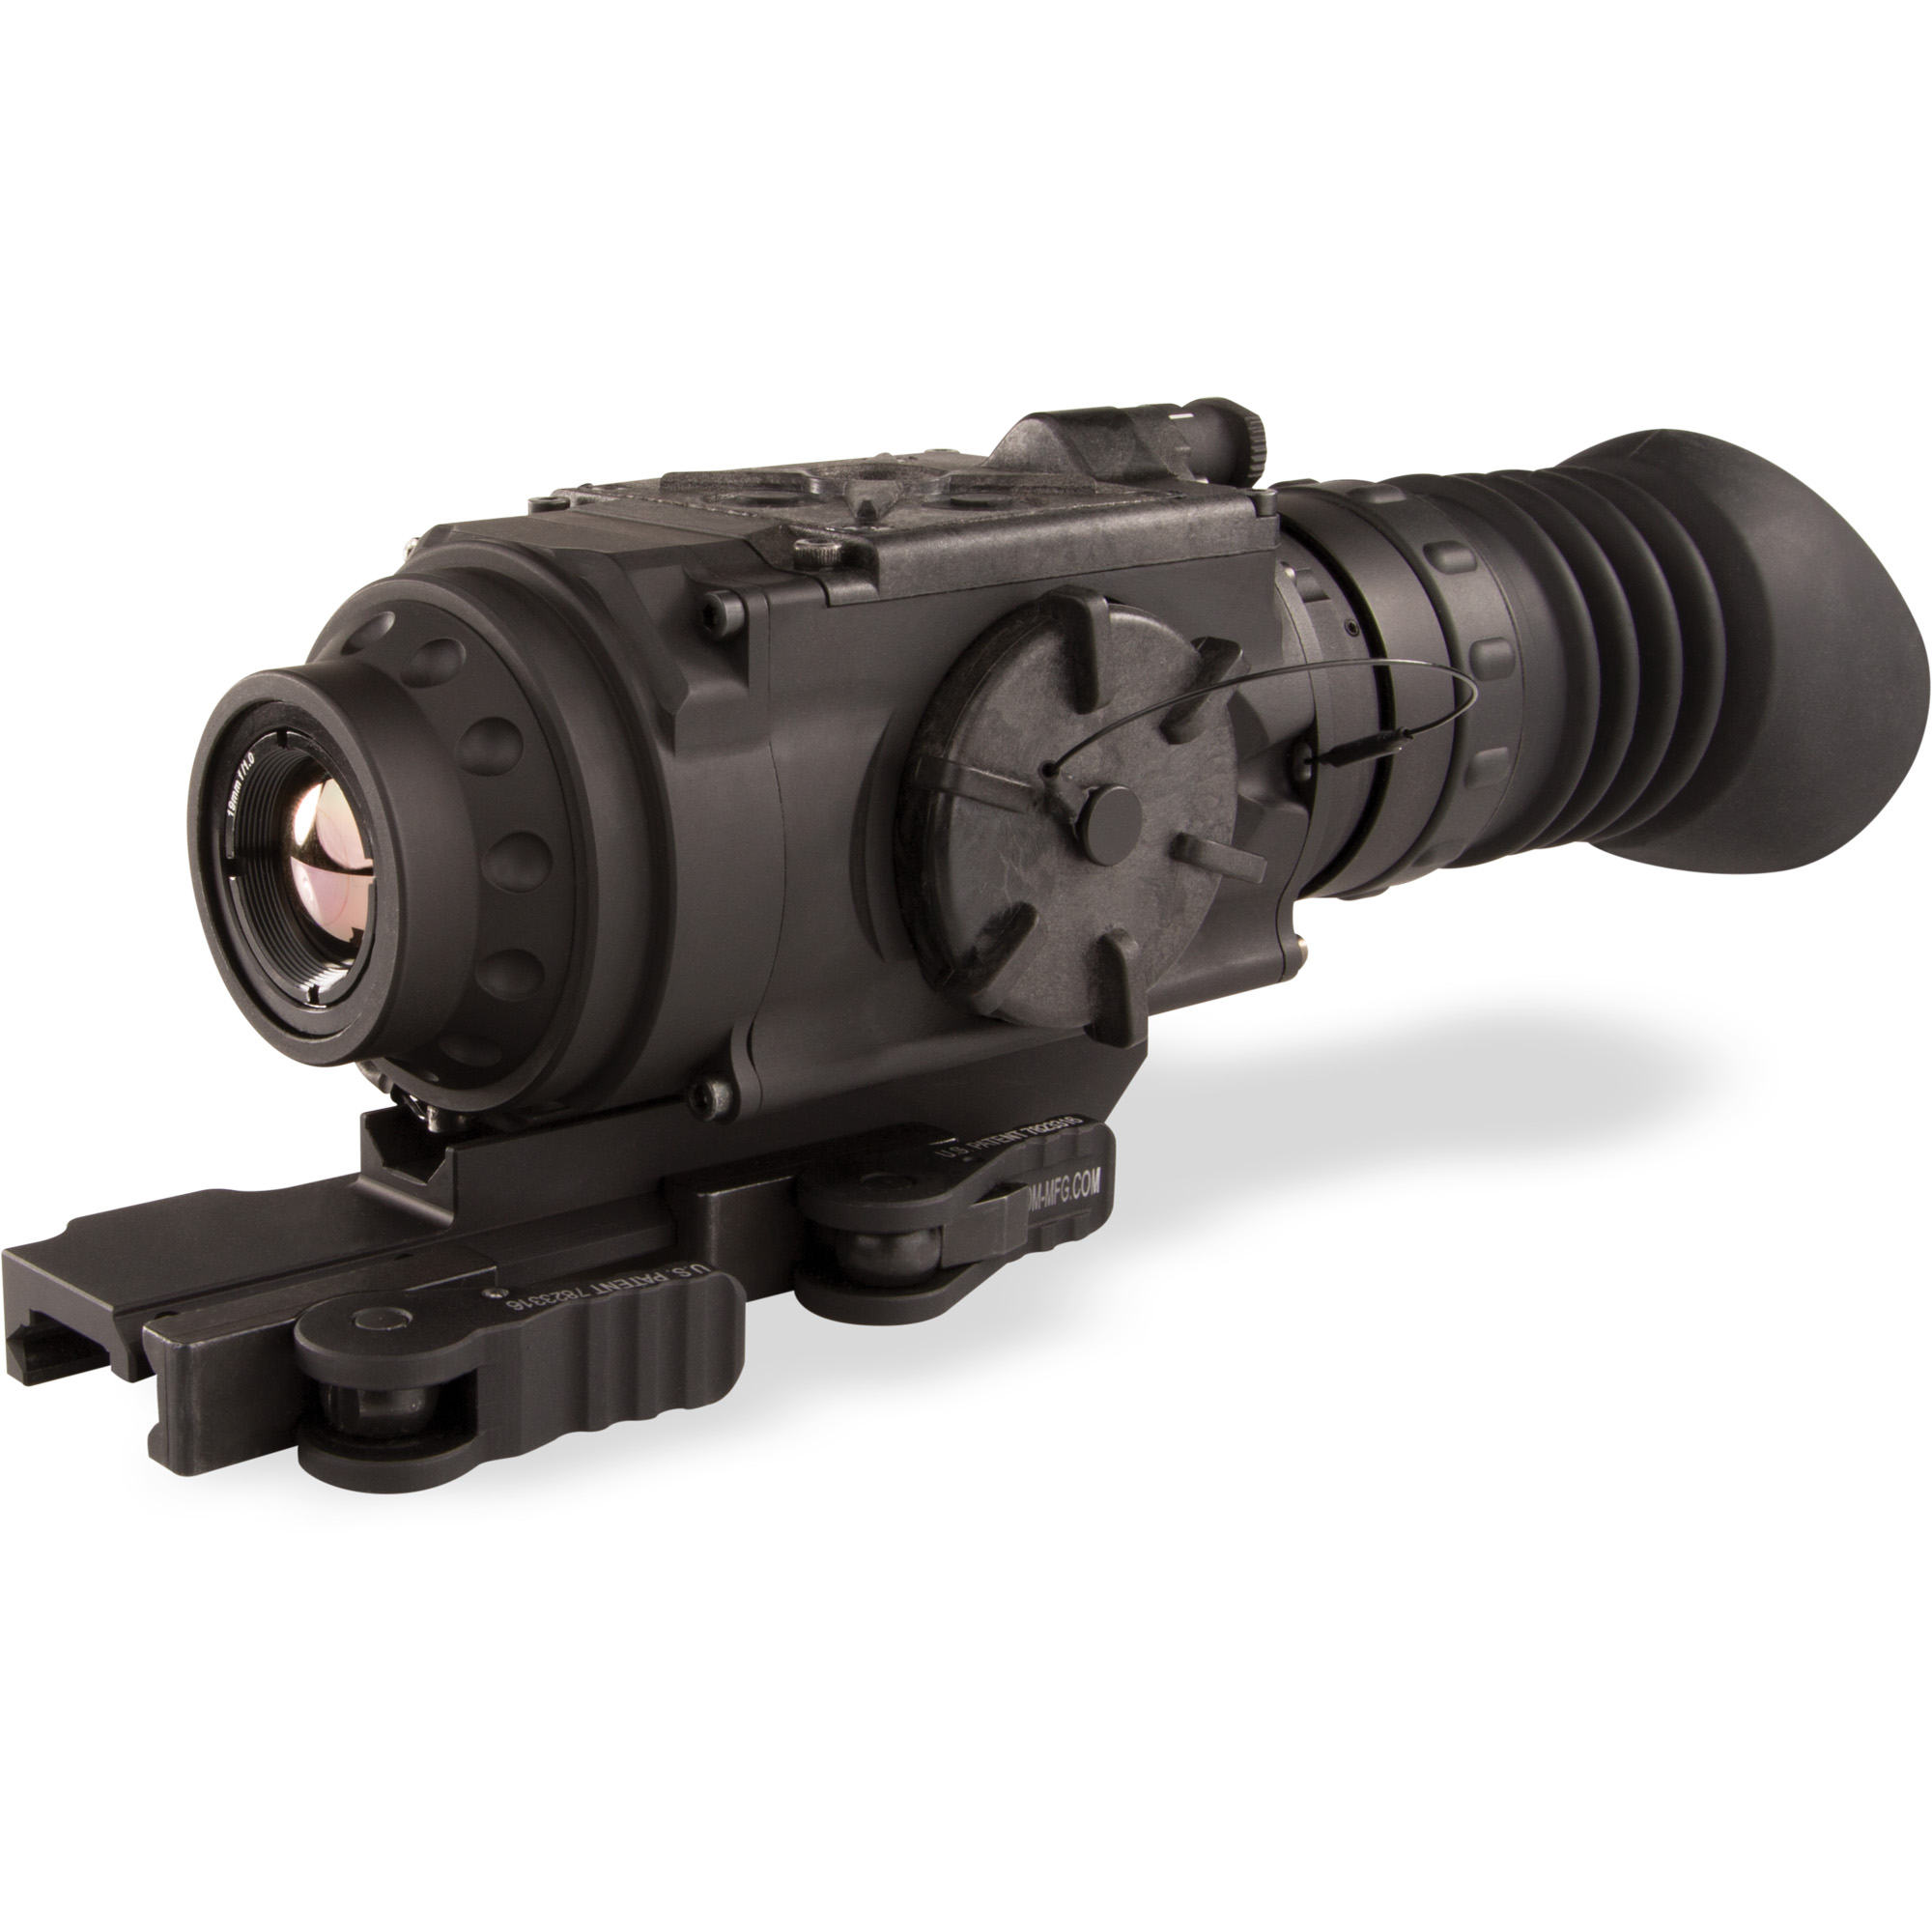 FLIR ThermoSight Pro PTS233 320X256 Microbolometer 60HZ 1x, 2x, 4x Digital Zoom White Hot Black Hot Rainbow High Contrast Ironbow Sepia Arctic Outdoor Alert Dot 4 MOA Line Dot Cross Center Dot Cross Crosshair and No Reticle